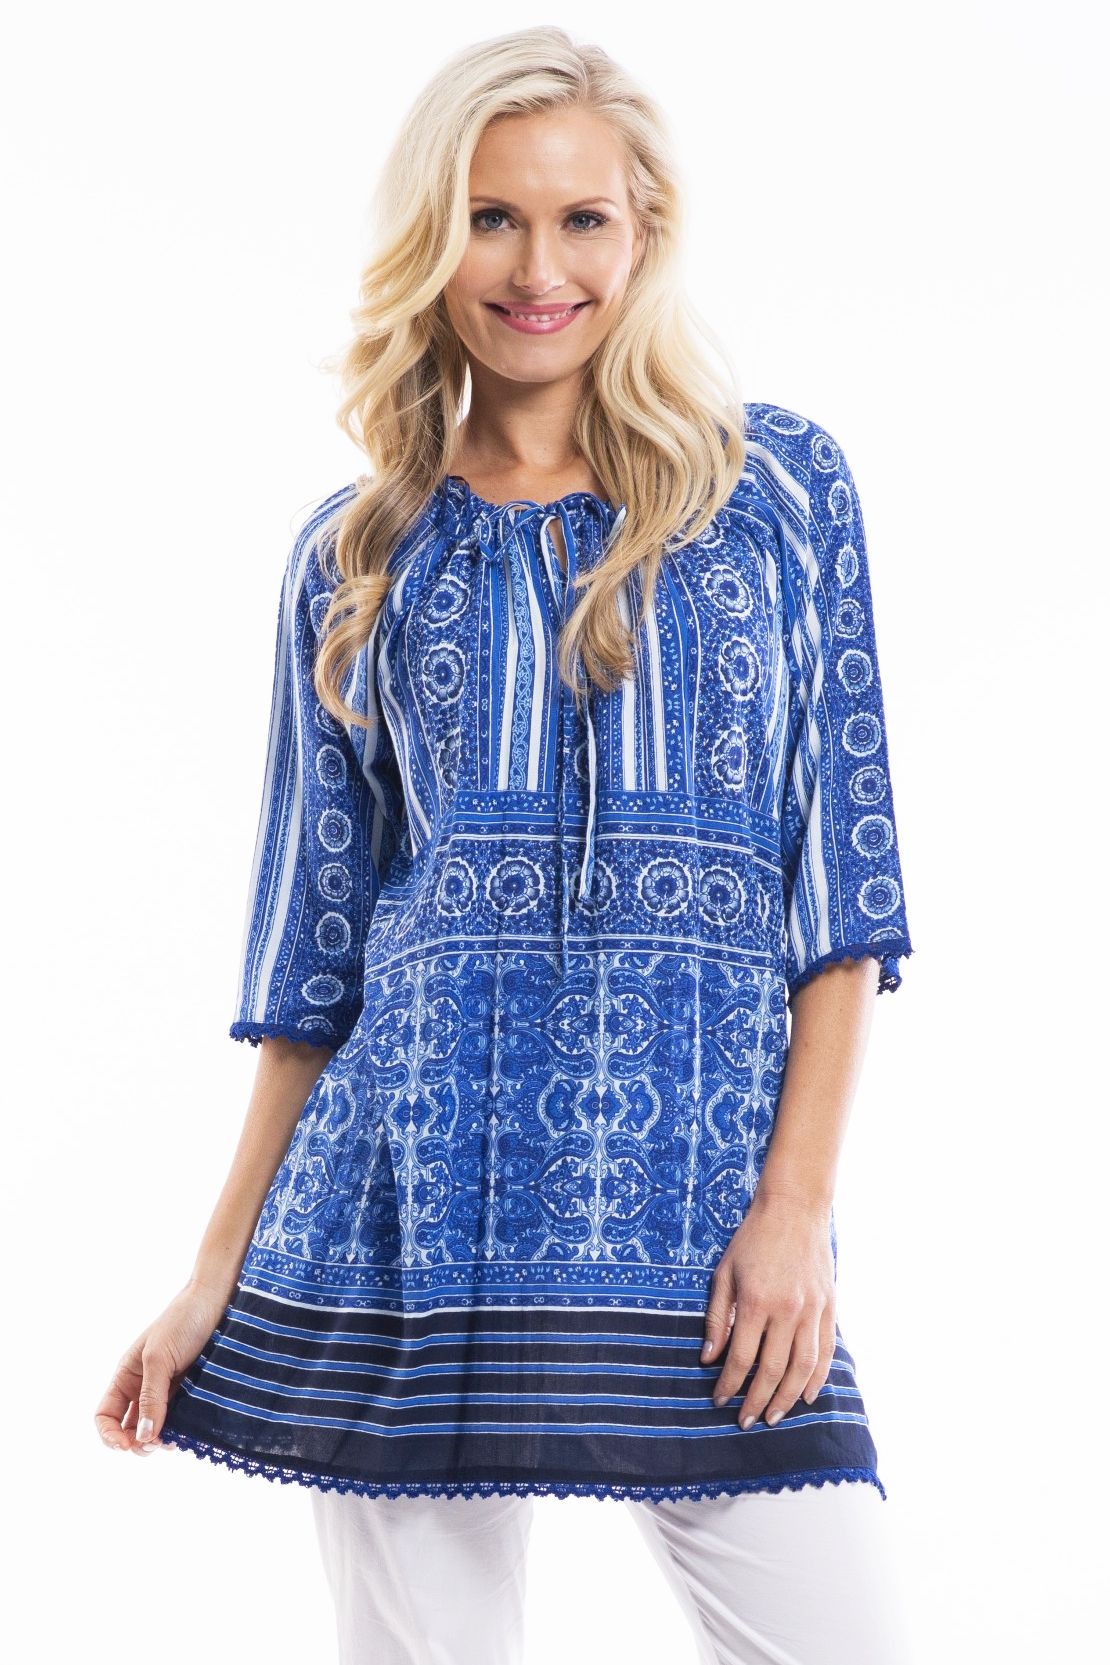 Blue White Moroccan Tunic | I Love Tunics | Tunic Tops | Tunic Dresses | Women's Tops | Plus Size Australia | Mature Fashion